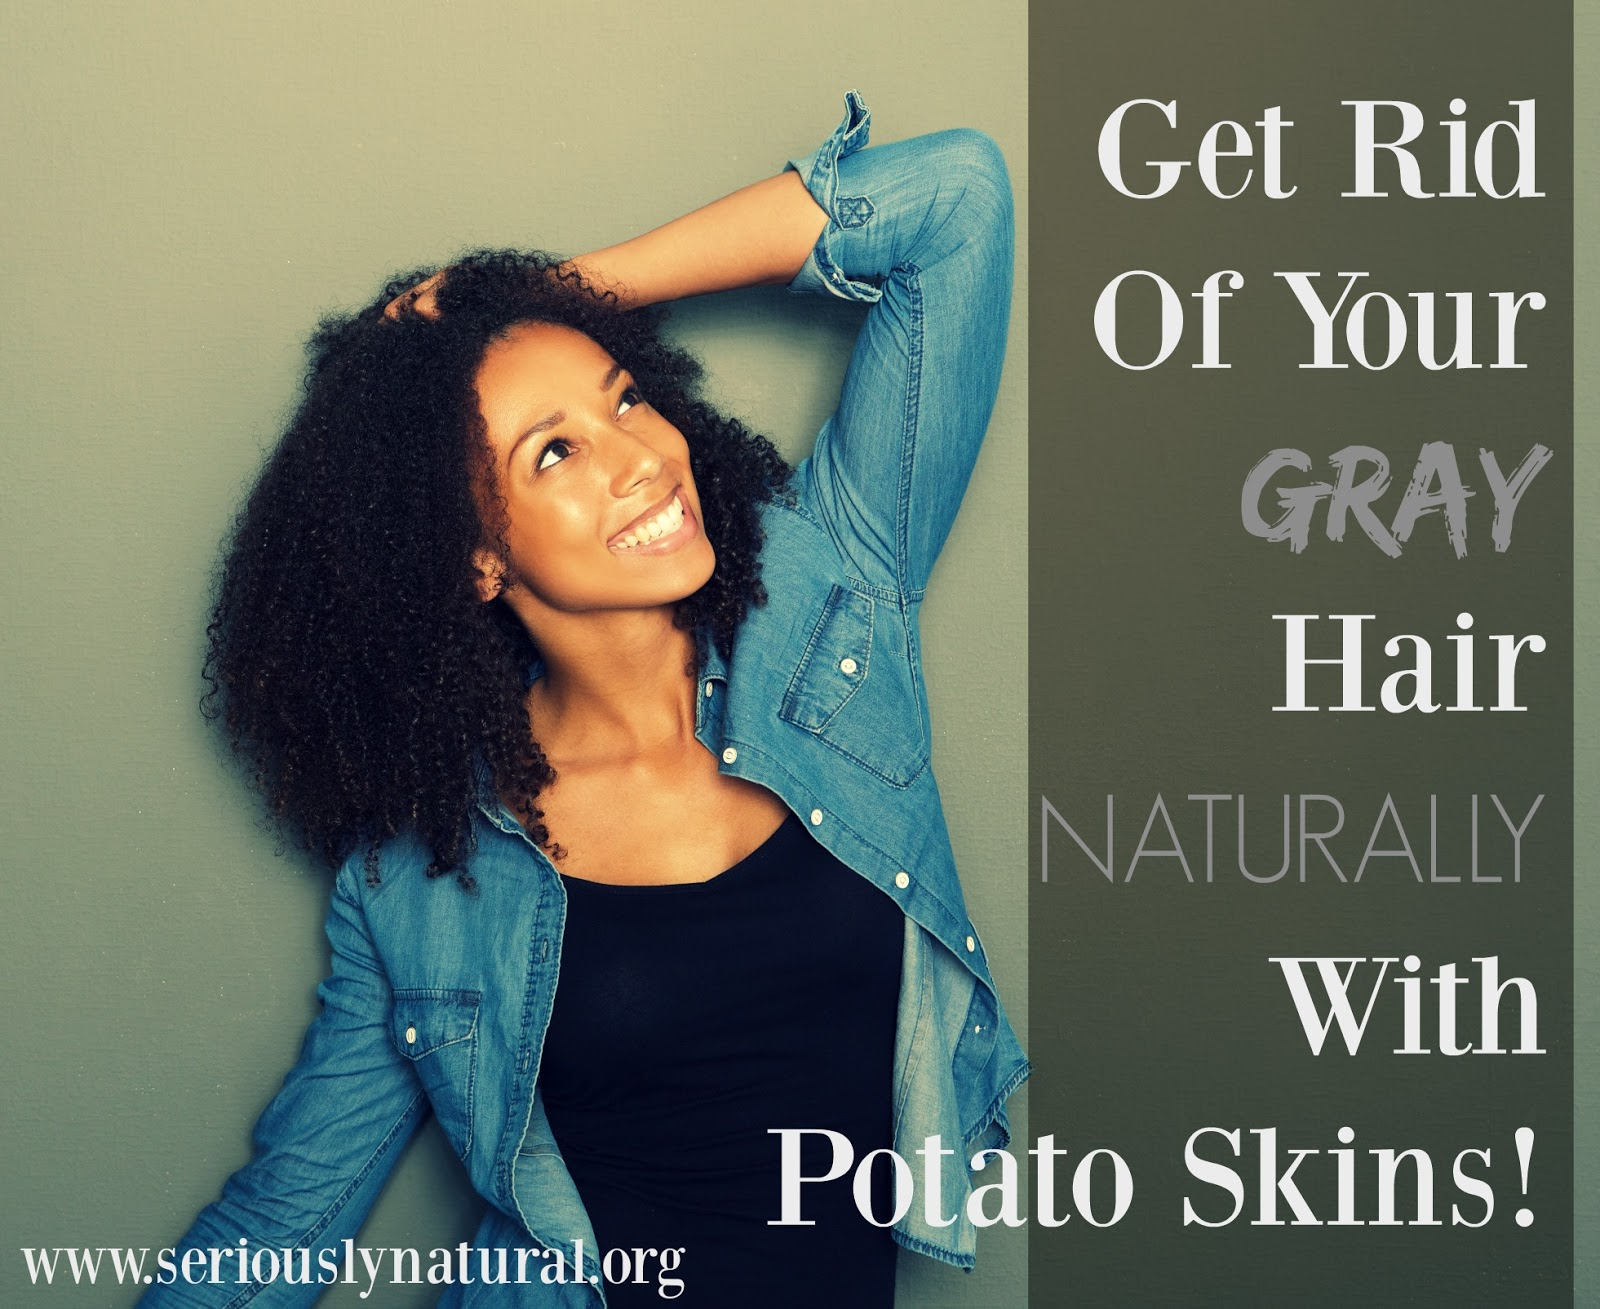 Tired of gray hair? Here's how to get rid of gray hair naturally! Simply use the power of the potato! Check out our easy recipe that is easy and cheap!